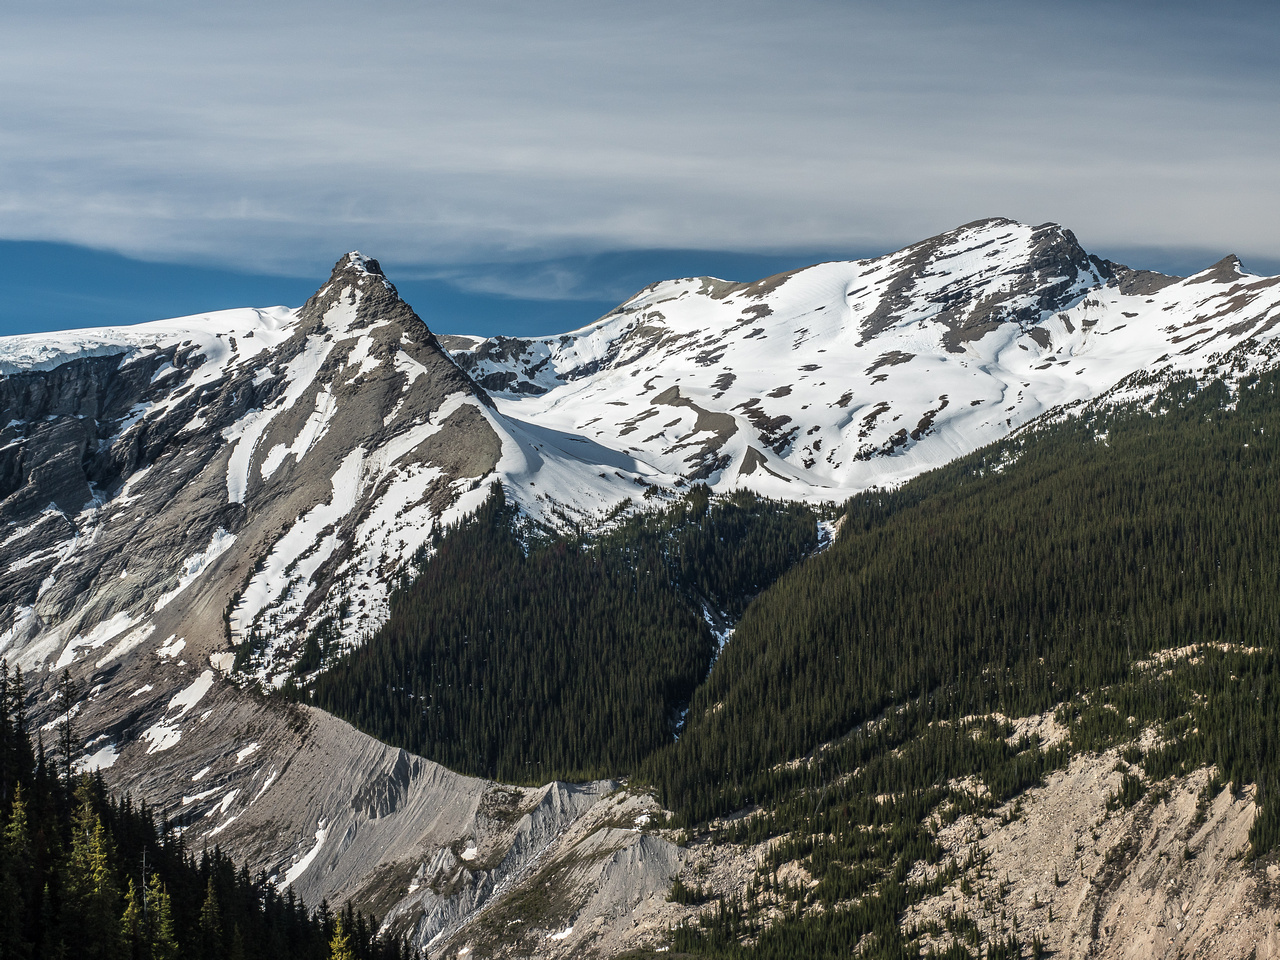 Looking across the Glacier River valley to the Lyell Meadows and the route to the Lyell Icefields via Arctomys Peak.